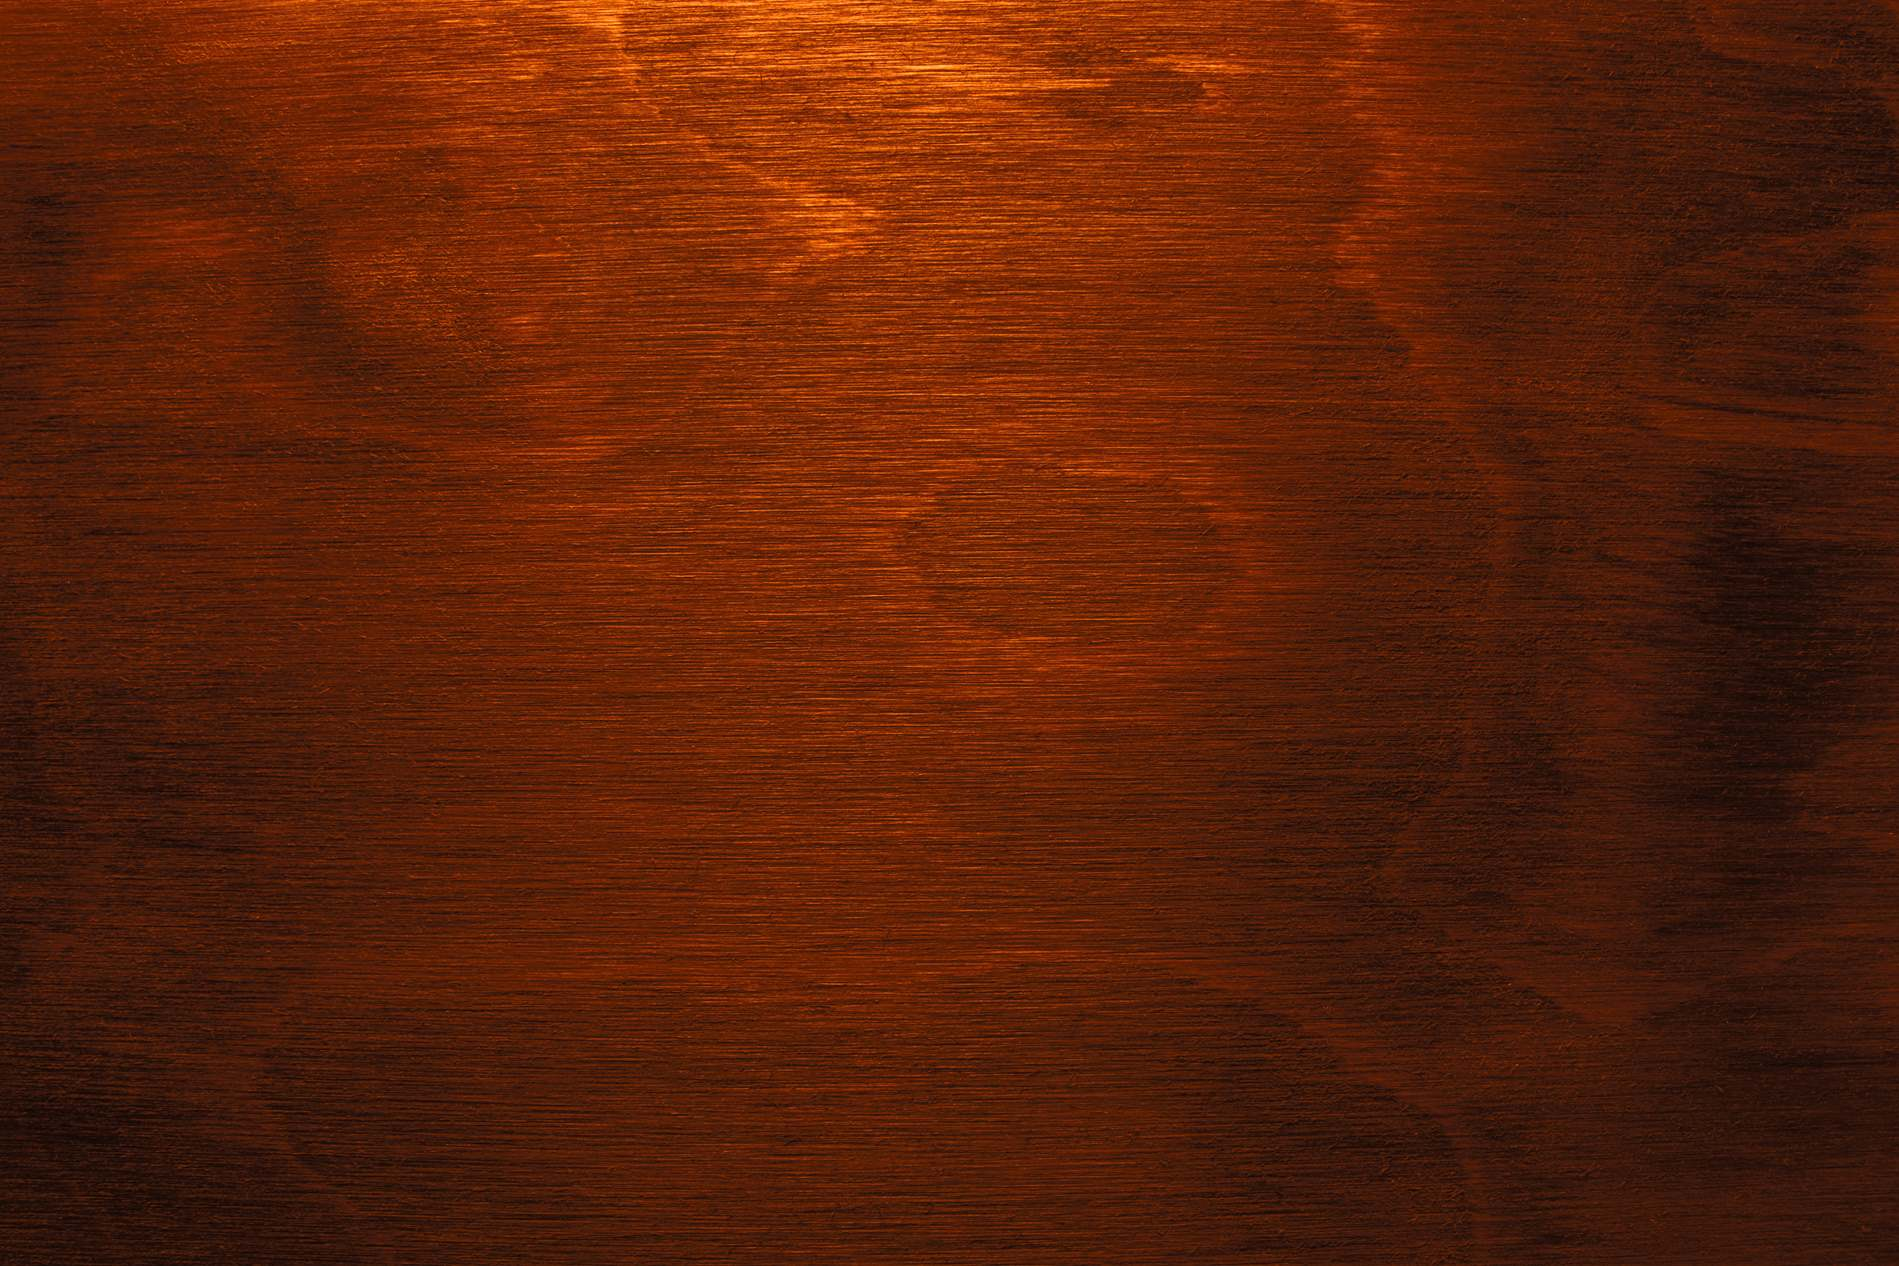 Dark Red Wood Texture Background